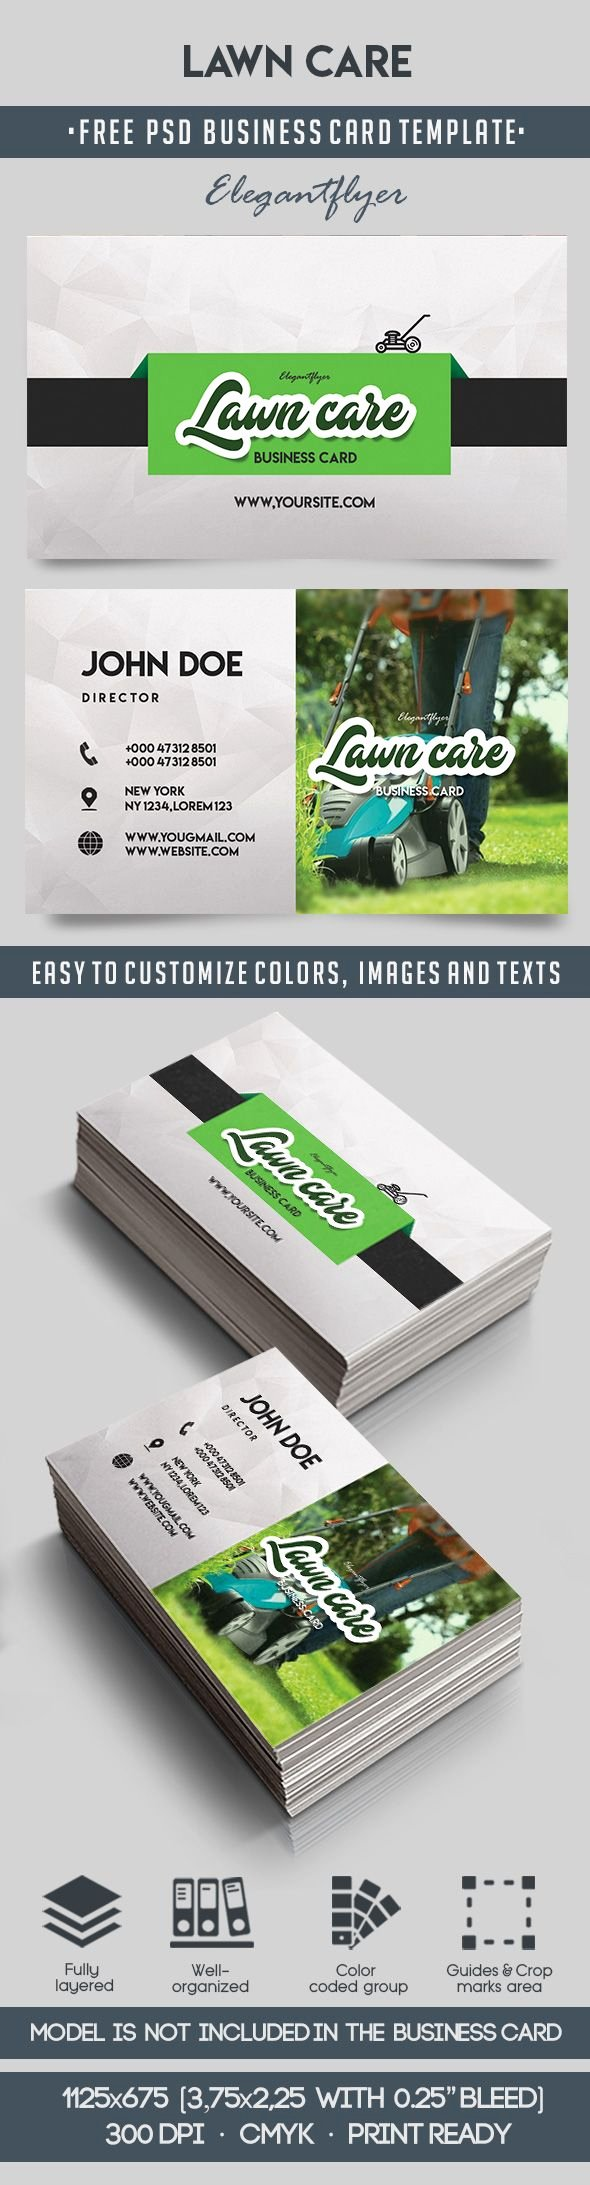 Landscaping Business Card Template Fresh Lawn Care – Free Business Card Templates Psd – by Elegantflyer